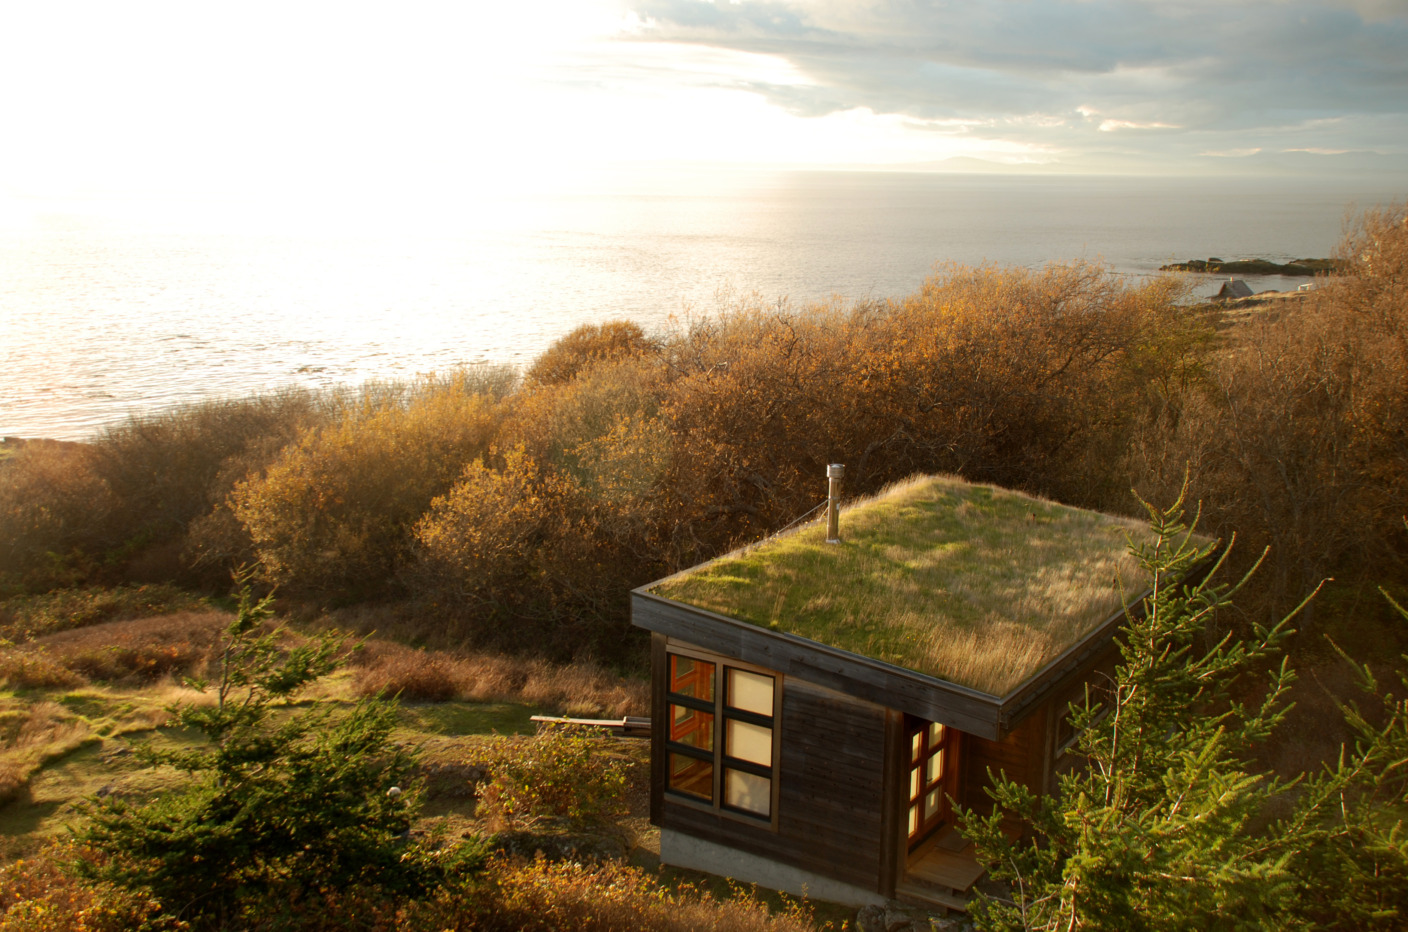 Eagle Point cabin - small house - beauty without excess